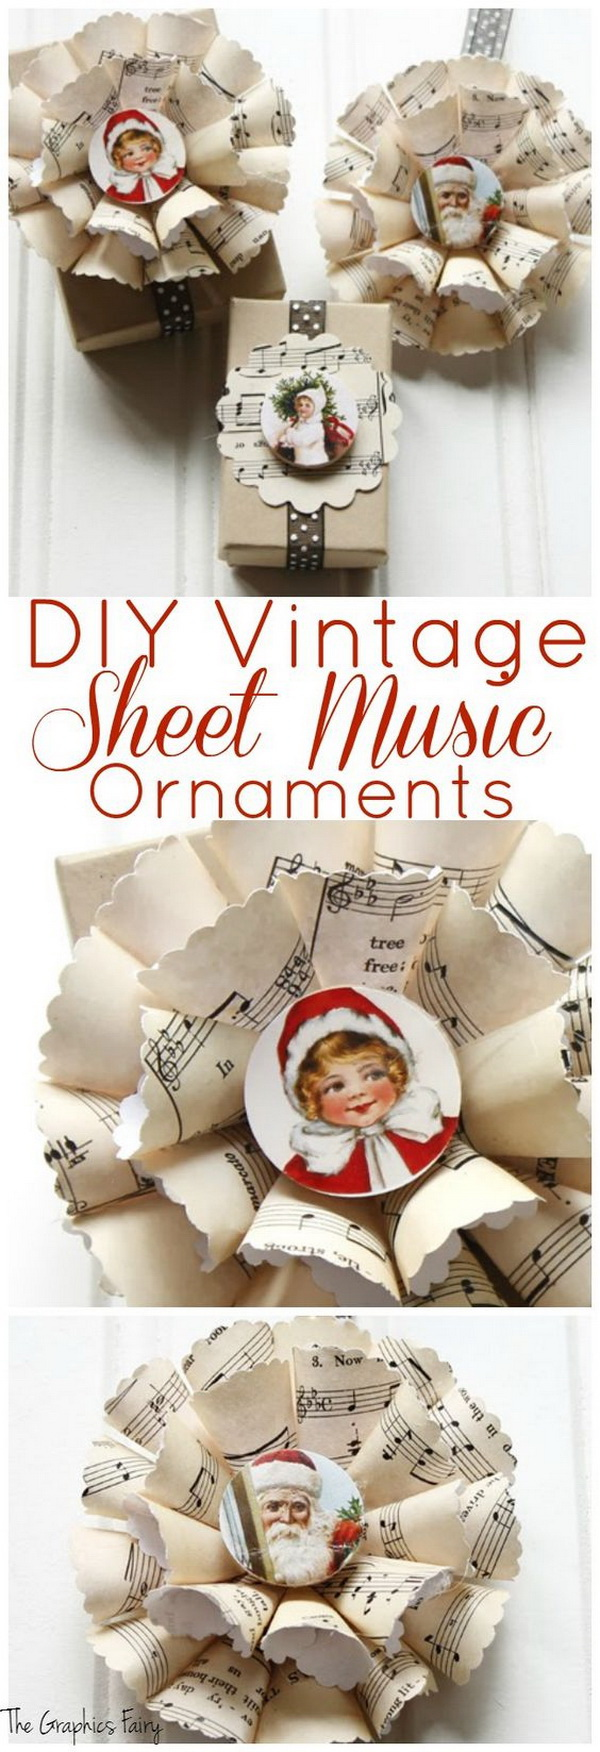 Sheet Music Christmas Ornaments. Make these cute ornament from a song or sheet music of your choice. Look great whether topping a package or hung on the Christmas tree!